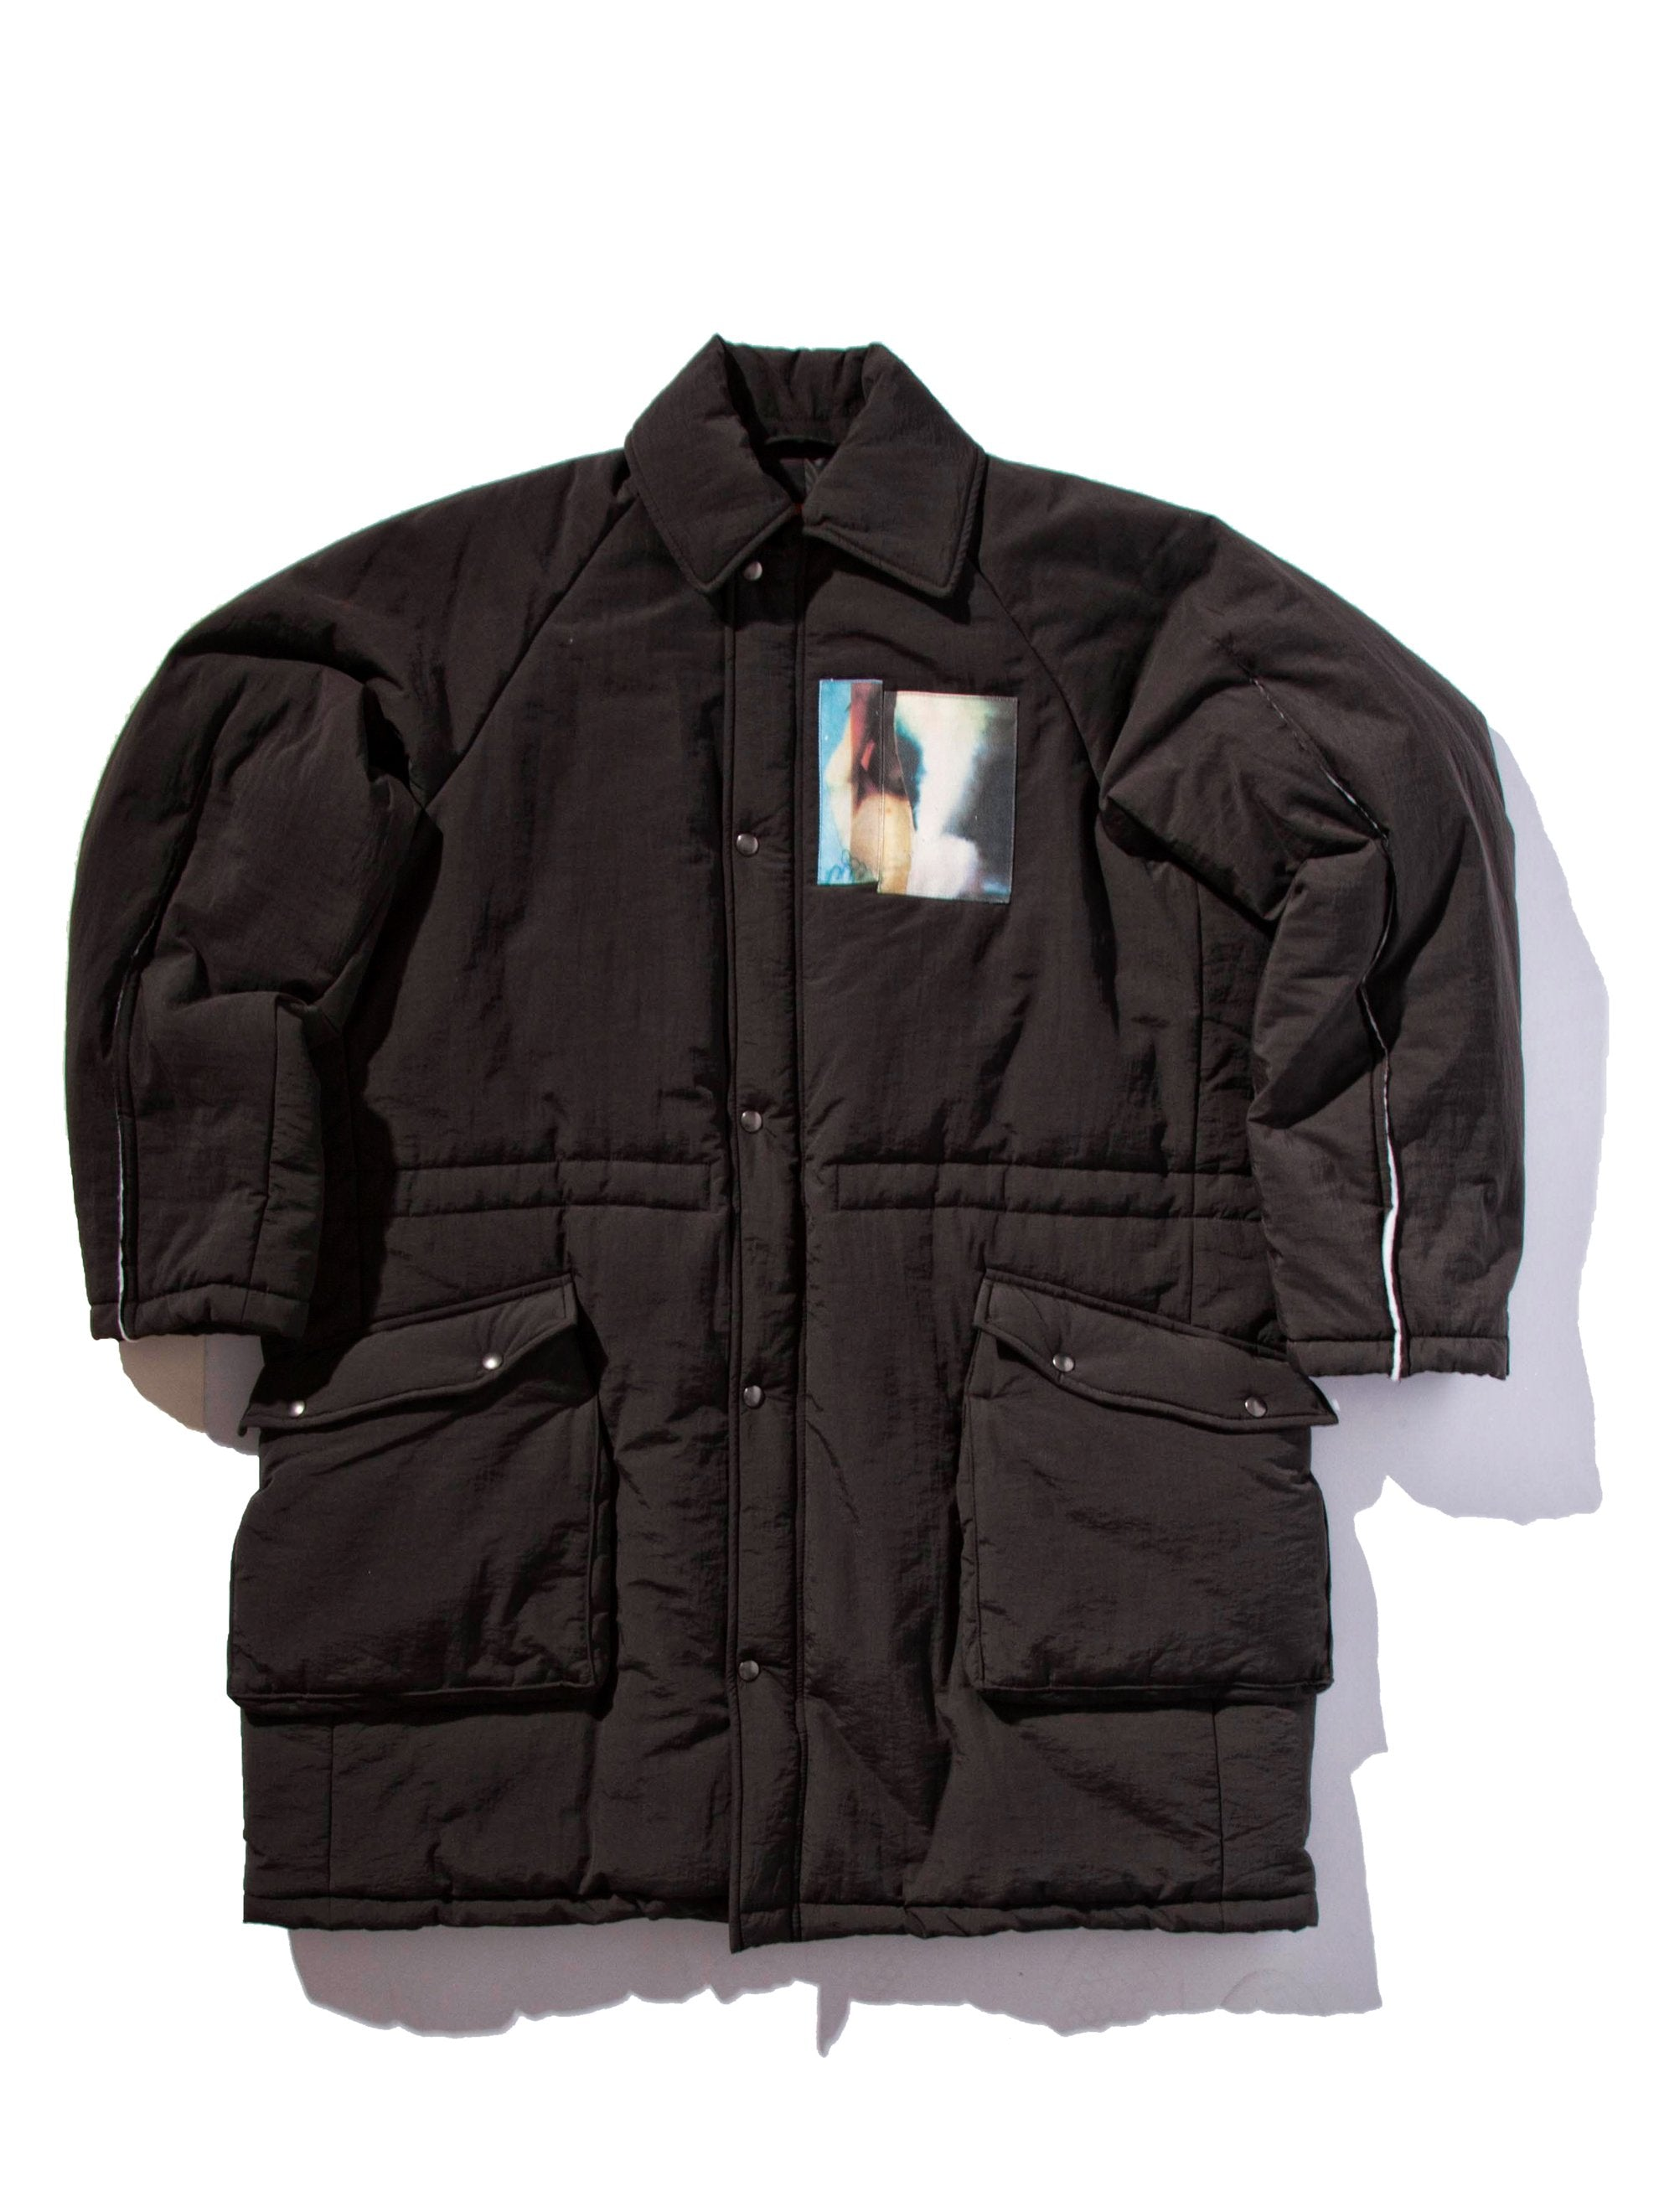 Coat (Cuts and Patches)